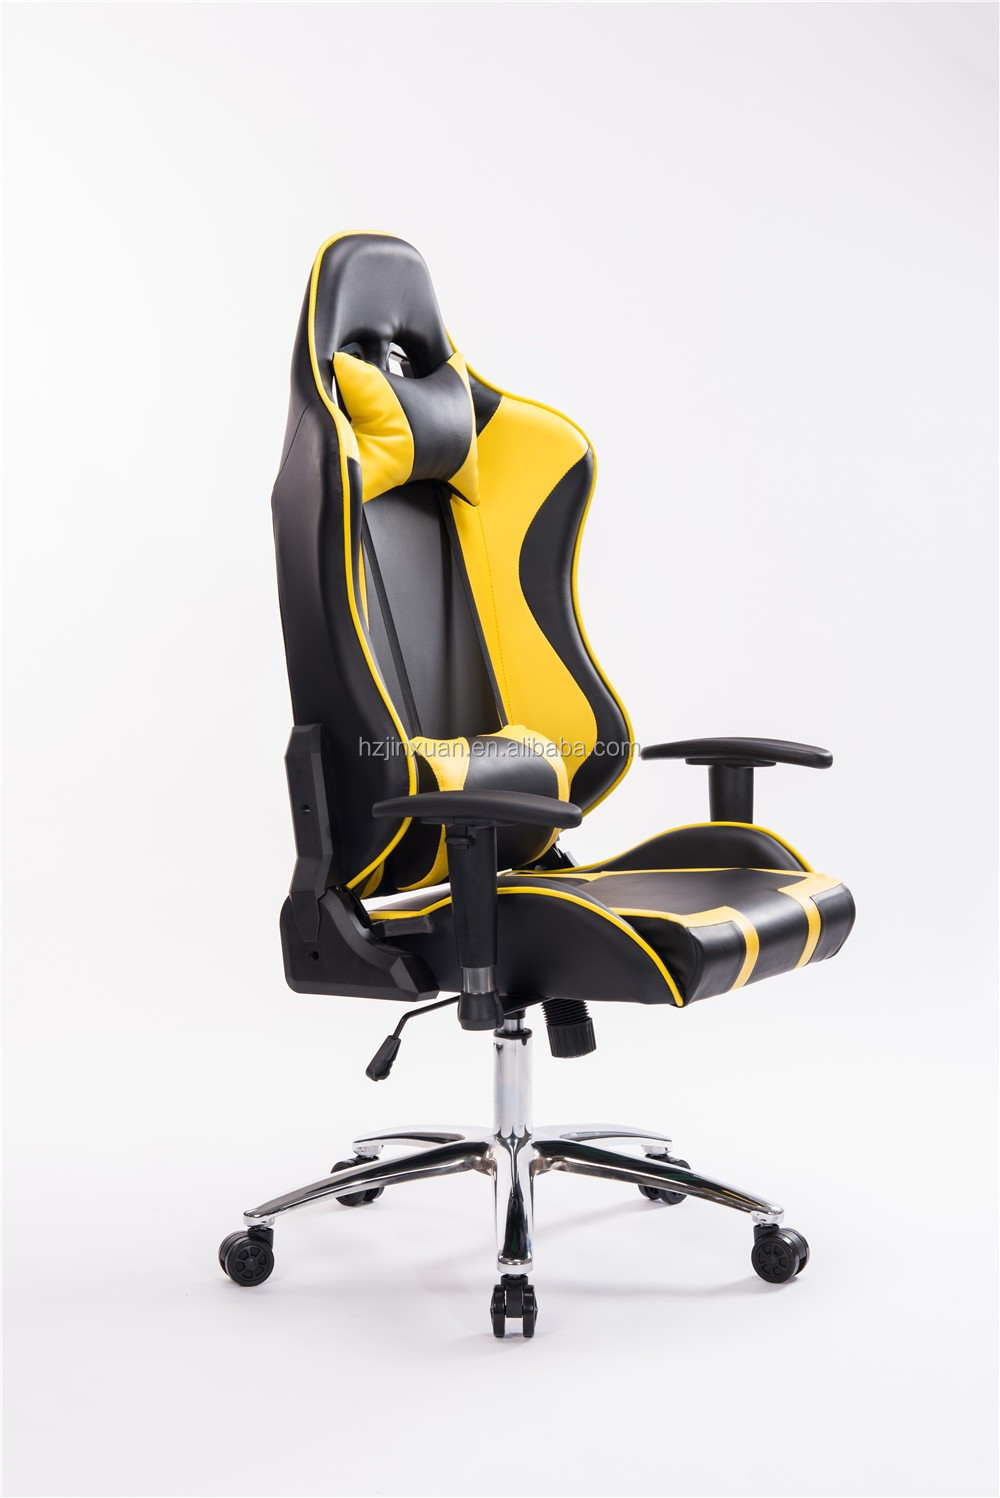 Fauteille Gamer Oem Odm Pc Game Stoelen Big Size Gamer Stoel Steelseries Gaming Stoel Met Multi Functionele Mechanisme Buy Big Size Gamer Stoel Odm Spel